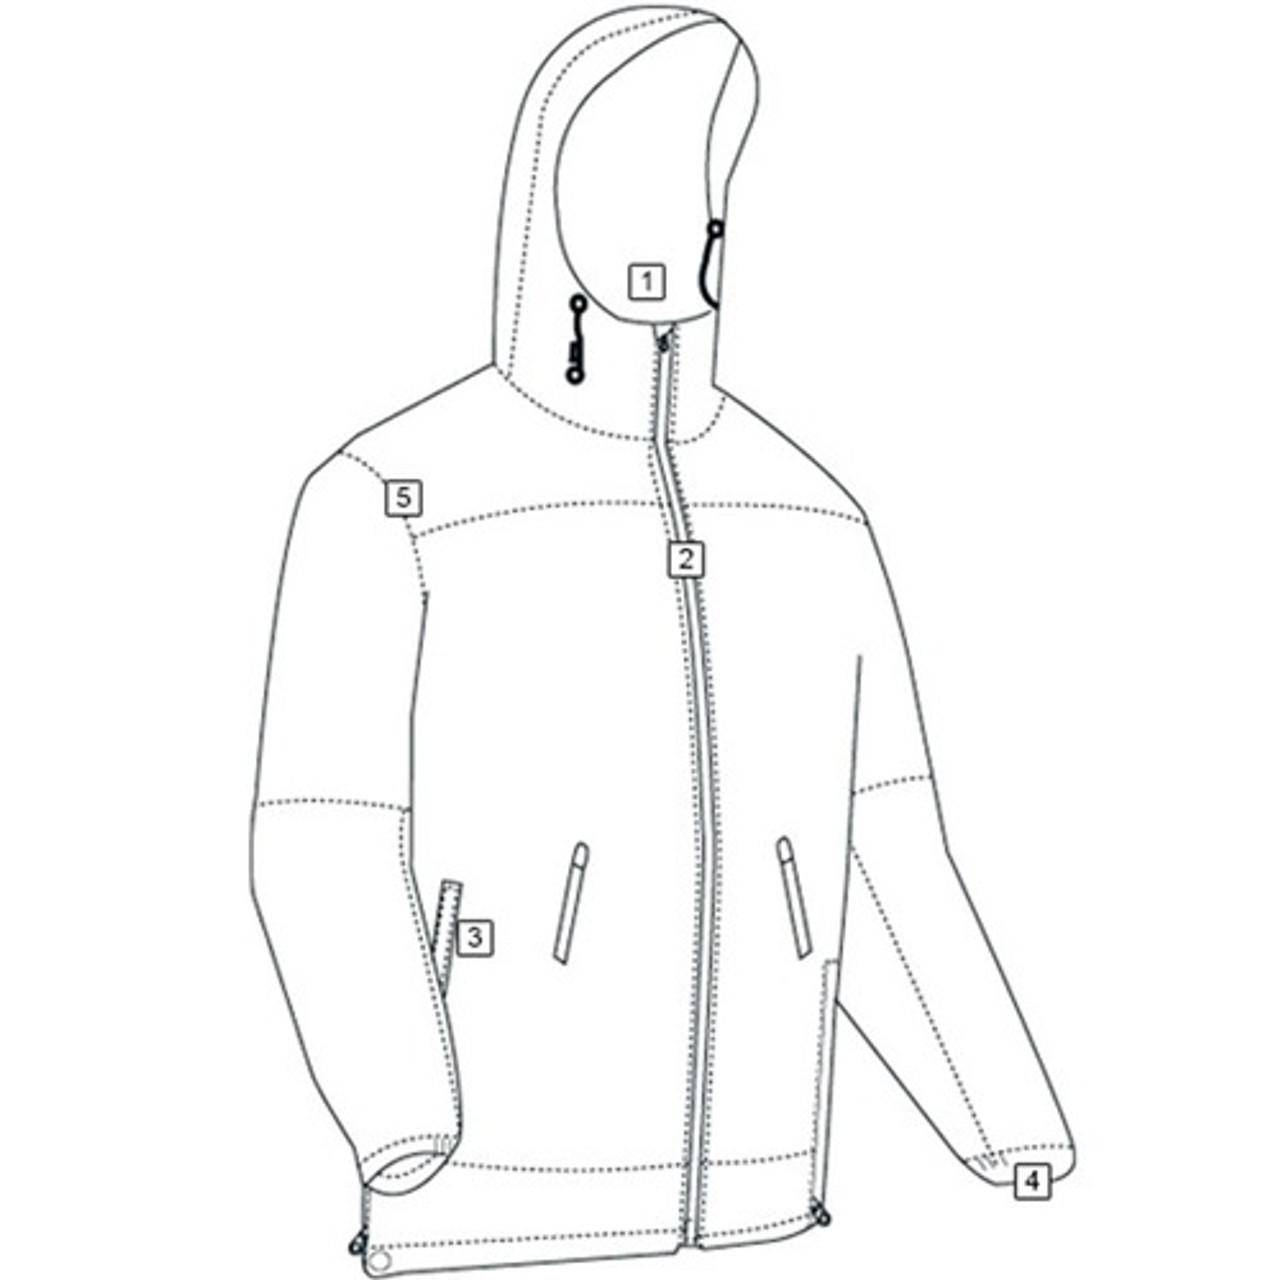 Tru-Spec TS-2402 Outerwear Water Proof All Season Rain Casual Tactical Jacket, Brimmed hood with drawstring, available in Black